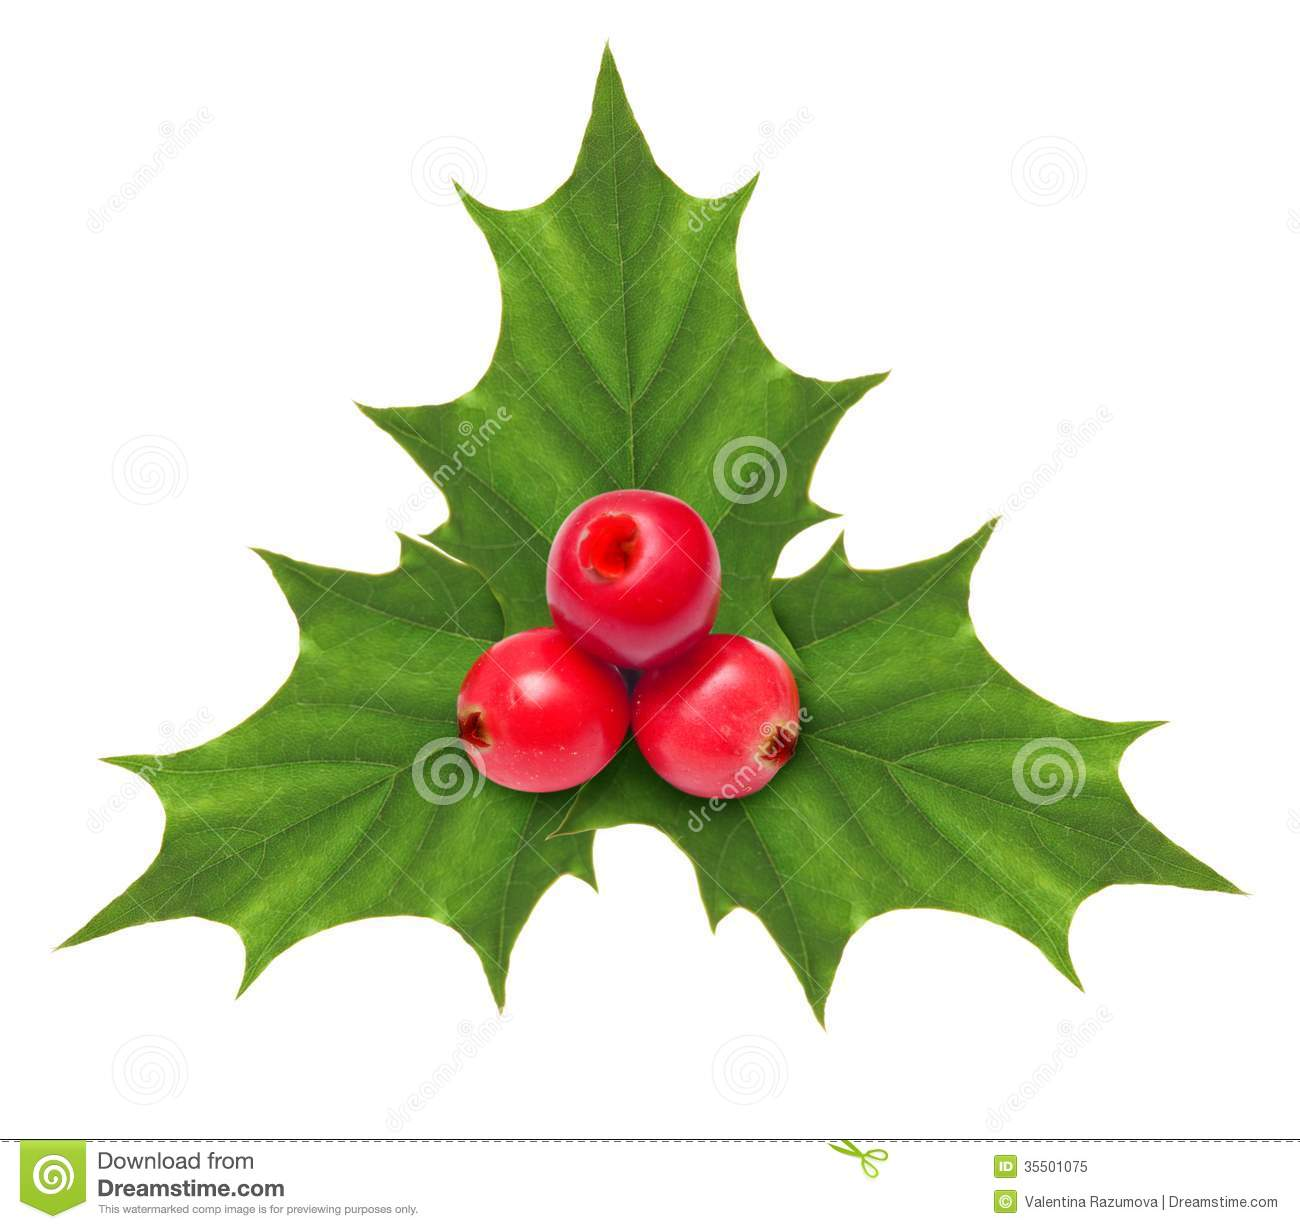 holly berry christmas decoration isolated - Christmas Holly Decorations